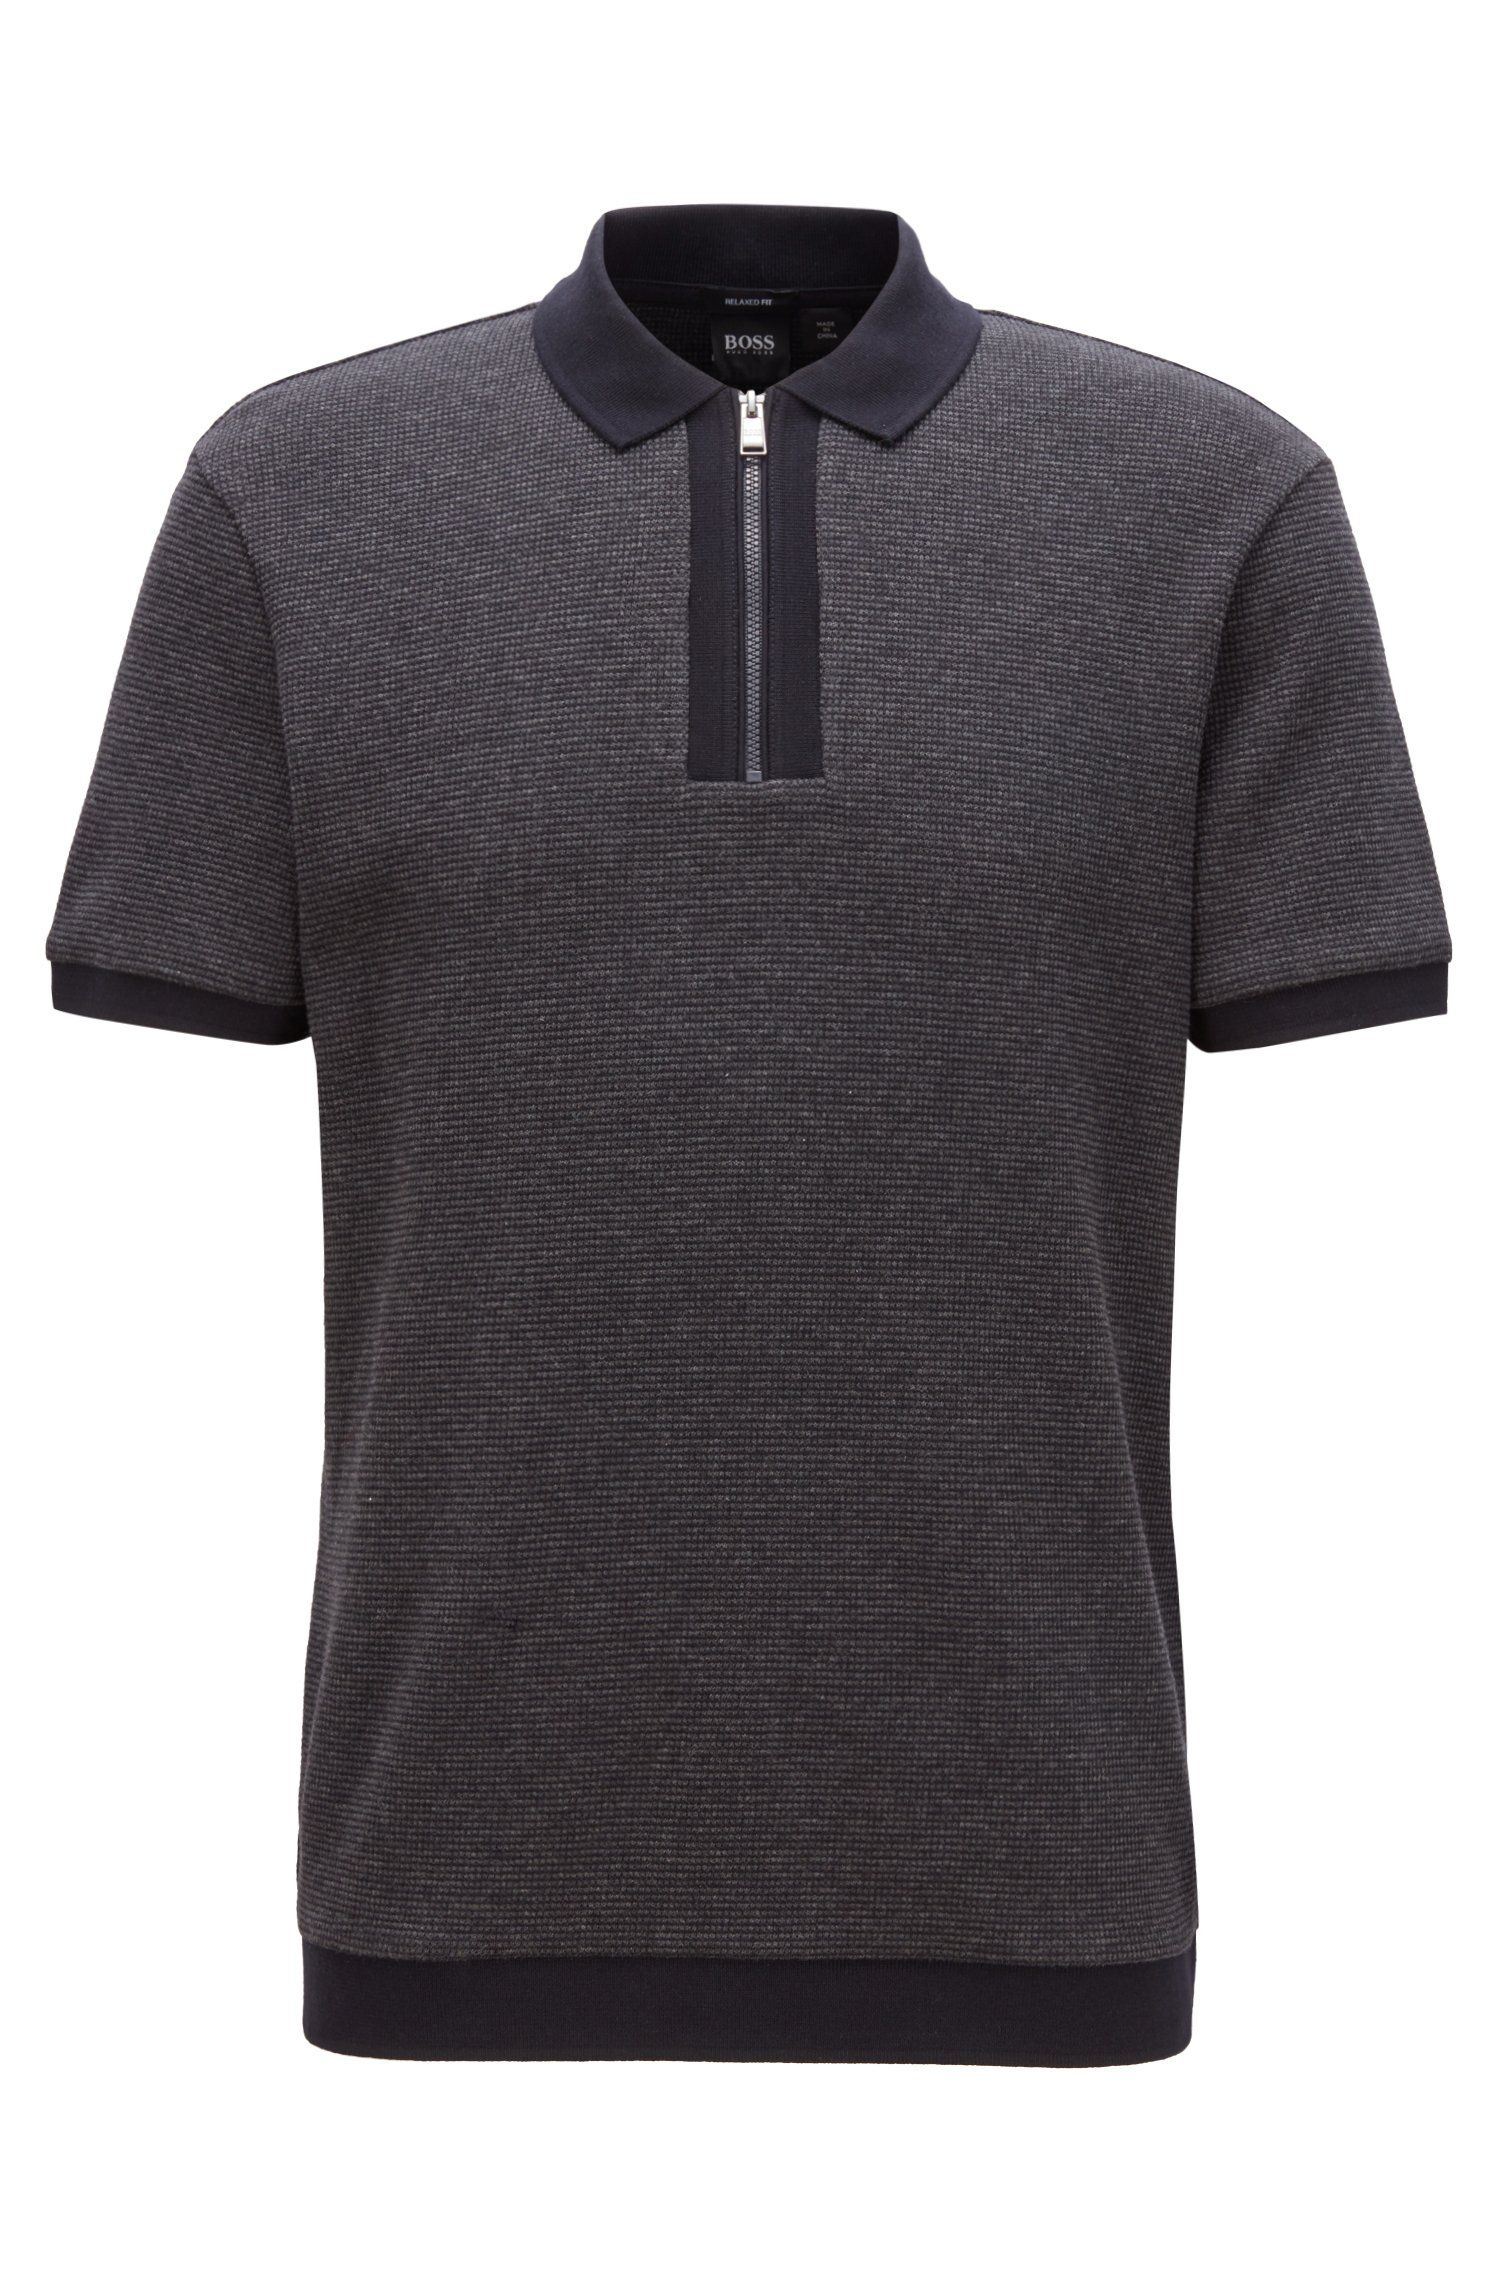 BOSS Relaxed fit polo shirt in cotton with zip neck